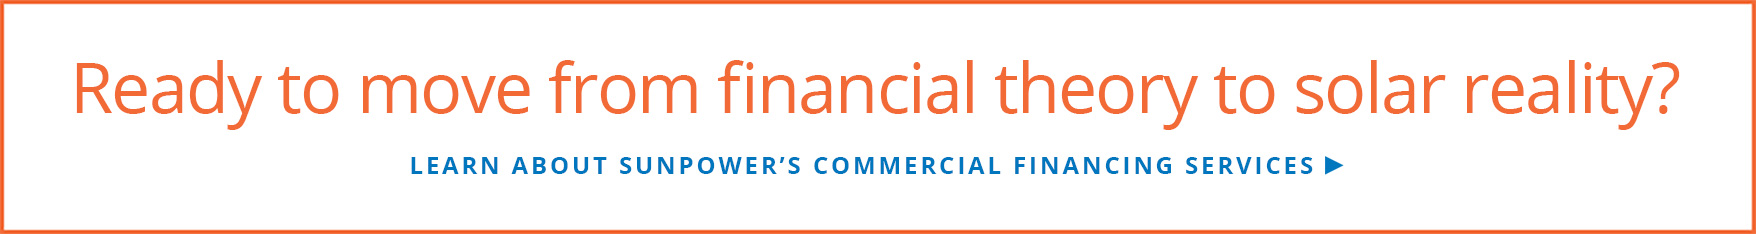 Learn about SunPower's commercial financing services